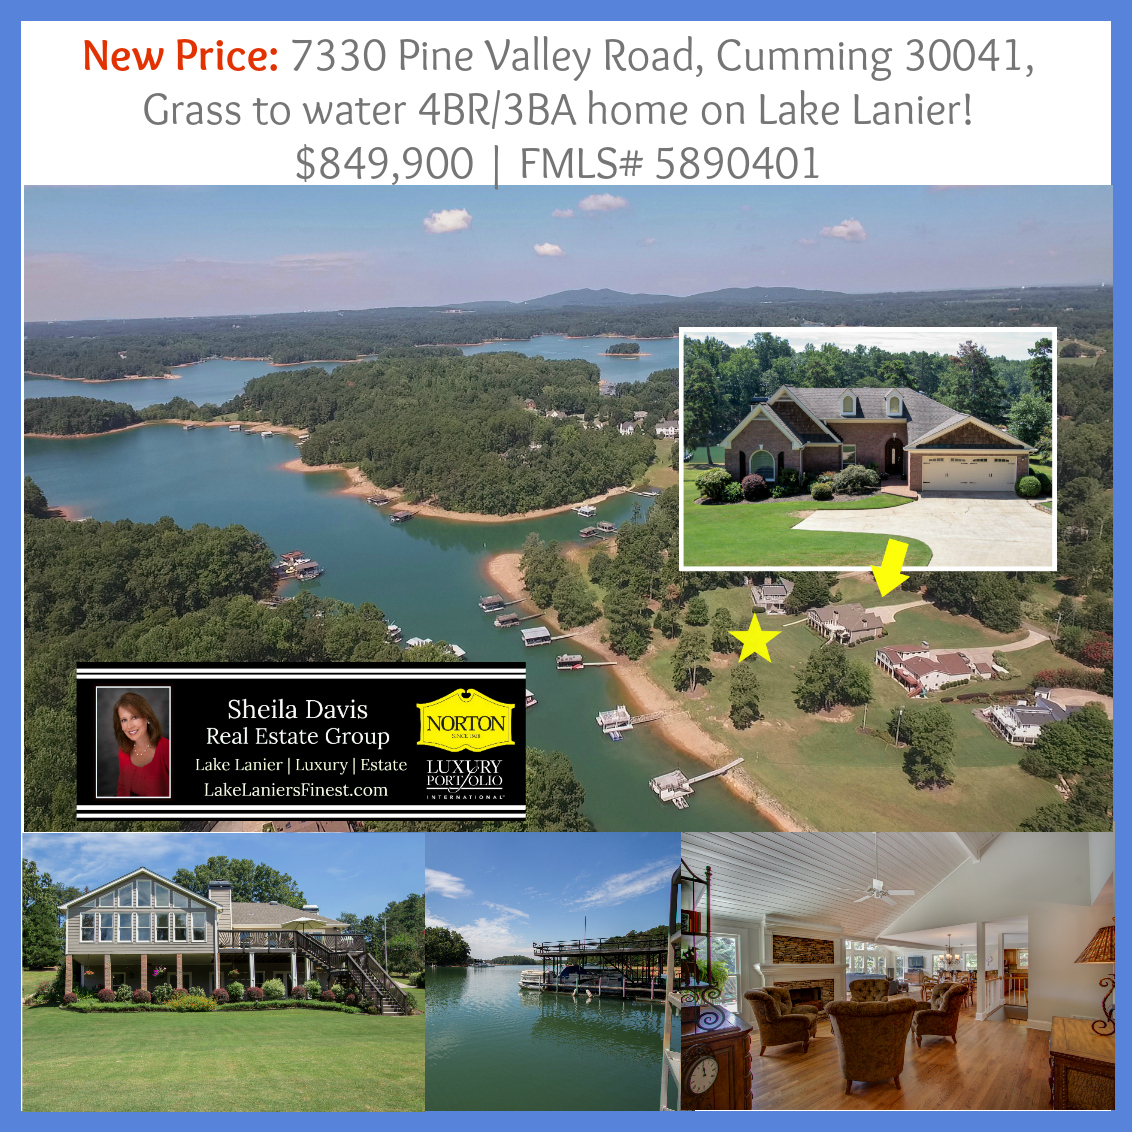 7330 Pine Valley Rd Price Reduction, Home for sale on Lake Lanier, Cumming, GA